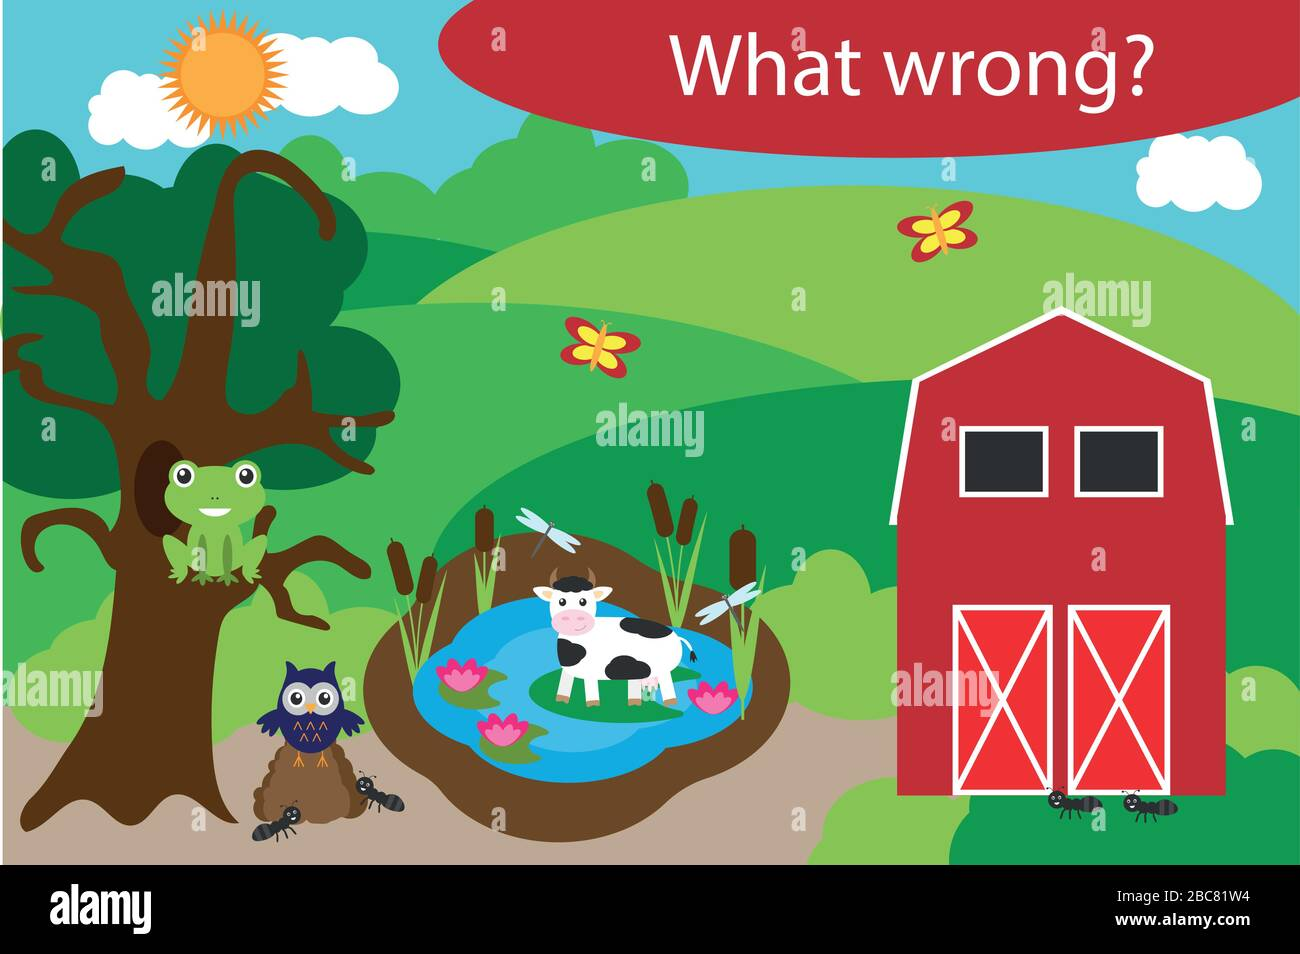 What Wrong Find Mistakes With Animals For Children Fun